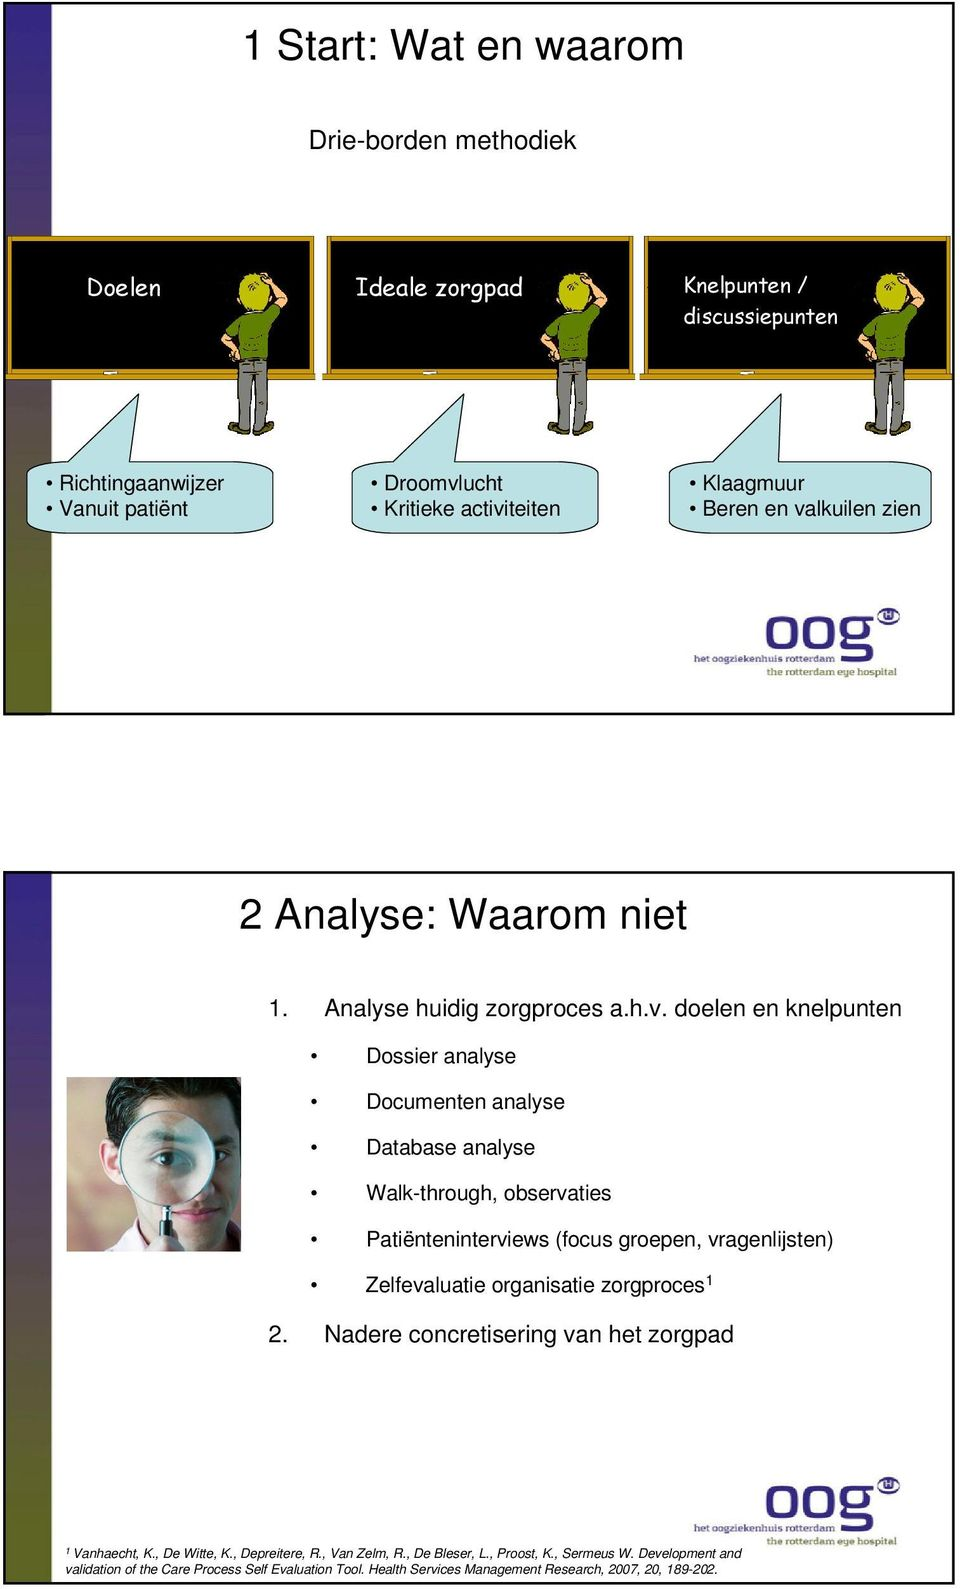 doelen en knelpunten Dossier analyse Documenten analyse Database analyse Walk-through, observaties Patiënteninterviews (focus groepen, vragenlijsten) Zelfevaluatie